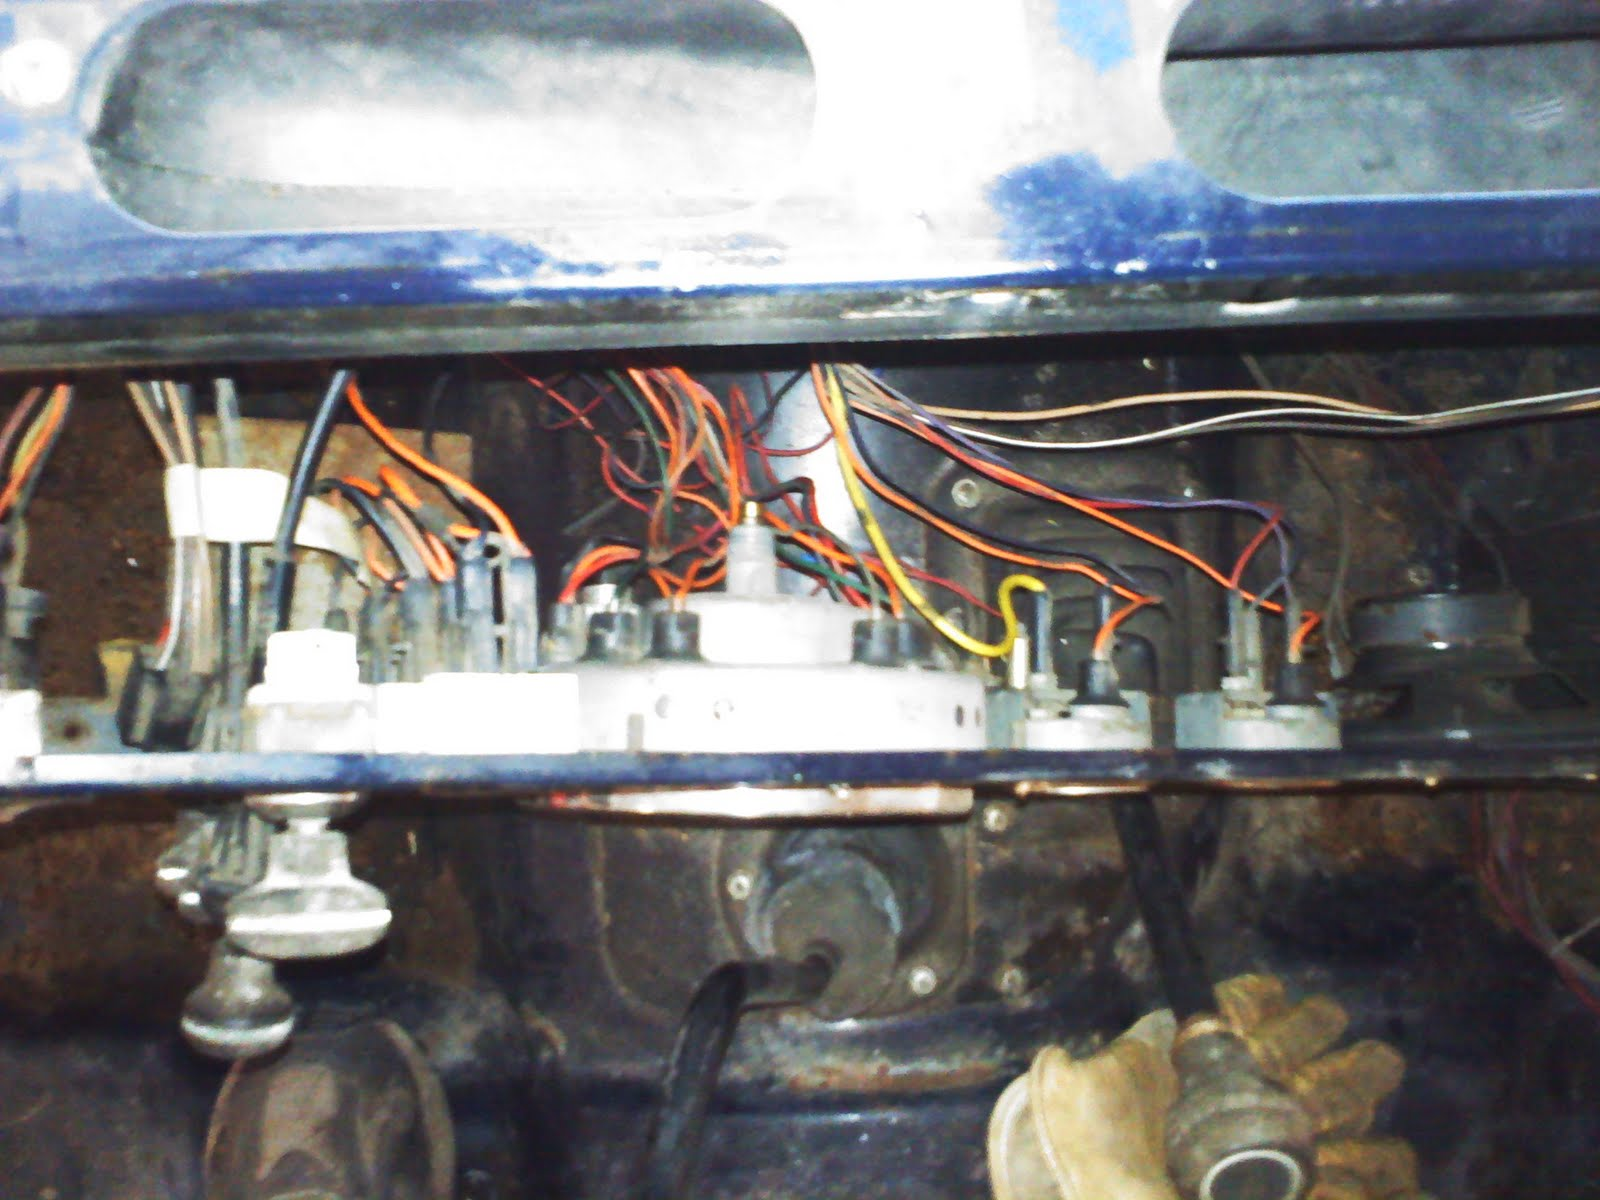 hight resolution of cj7 wiring harness diagram dash lights wiring library cj7 starter wiring 1979 jeep cj7 dash wiring